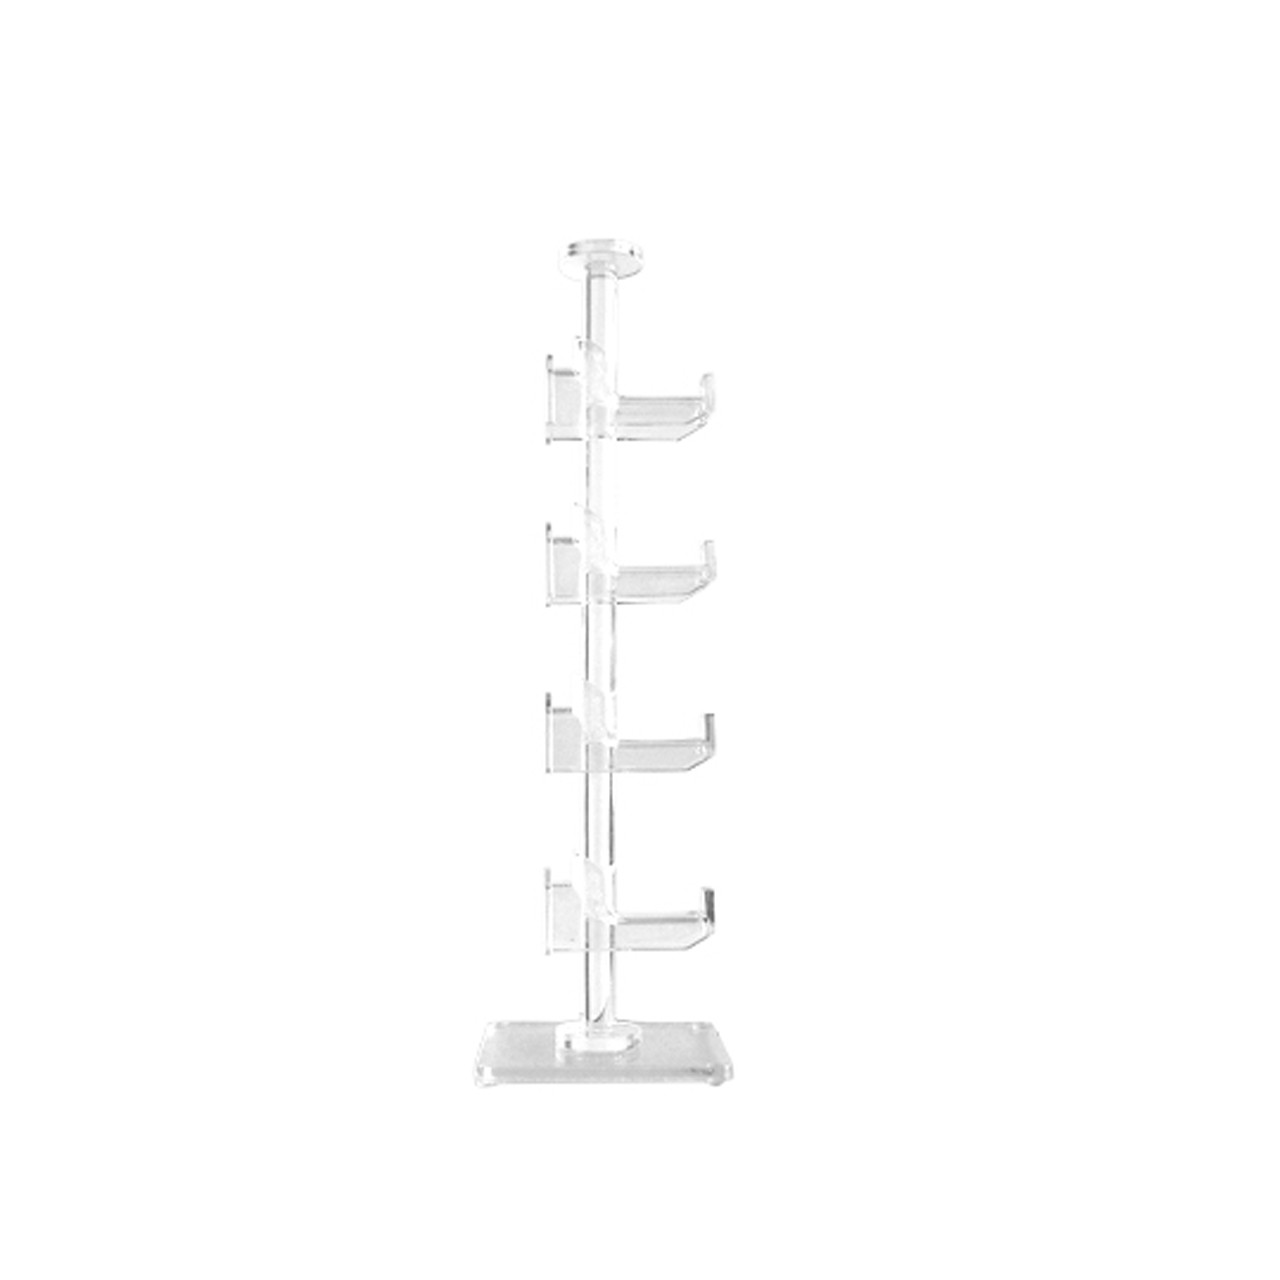 Acrylic Display Stand   Holds 4 Pair(s) 7055